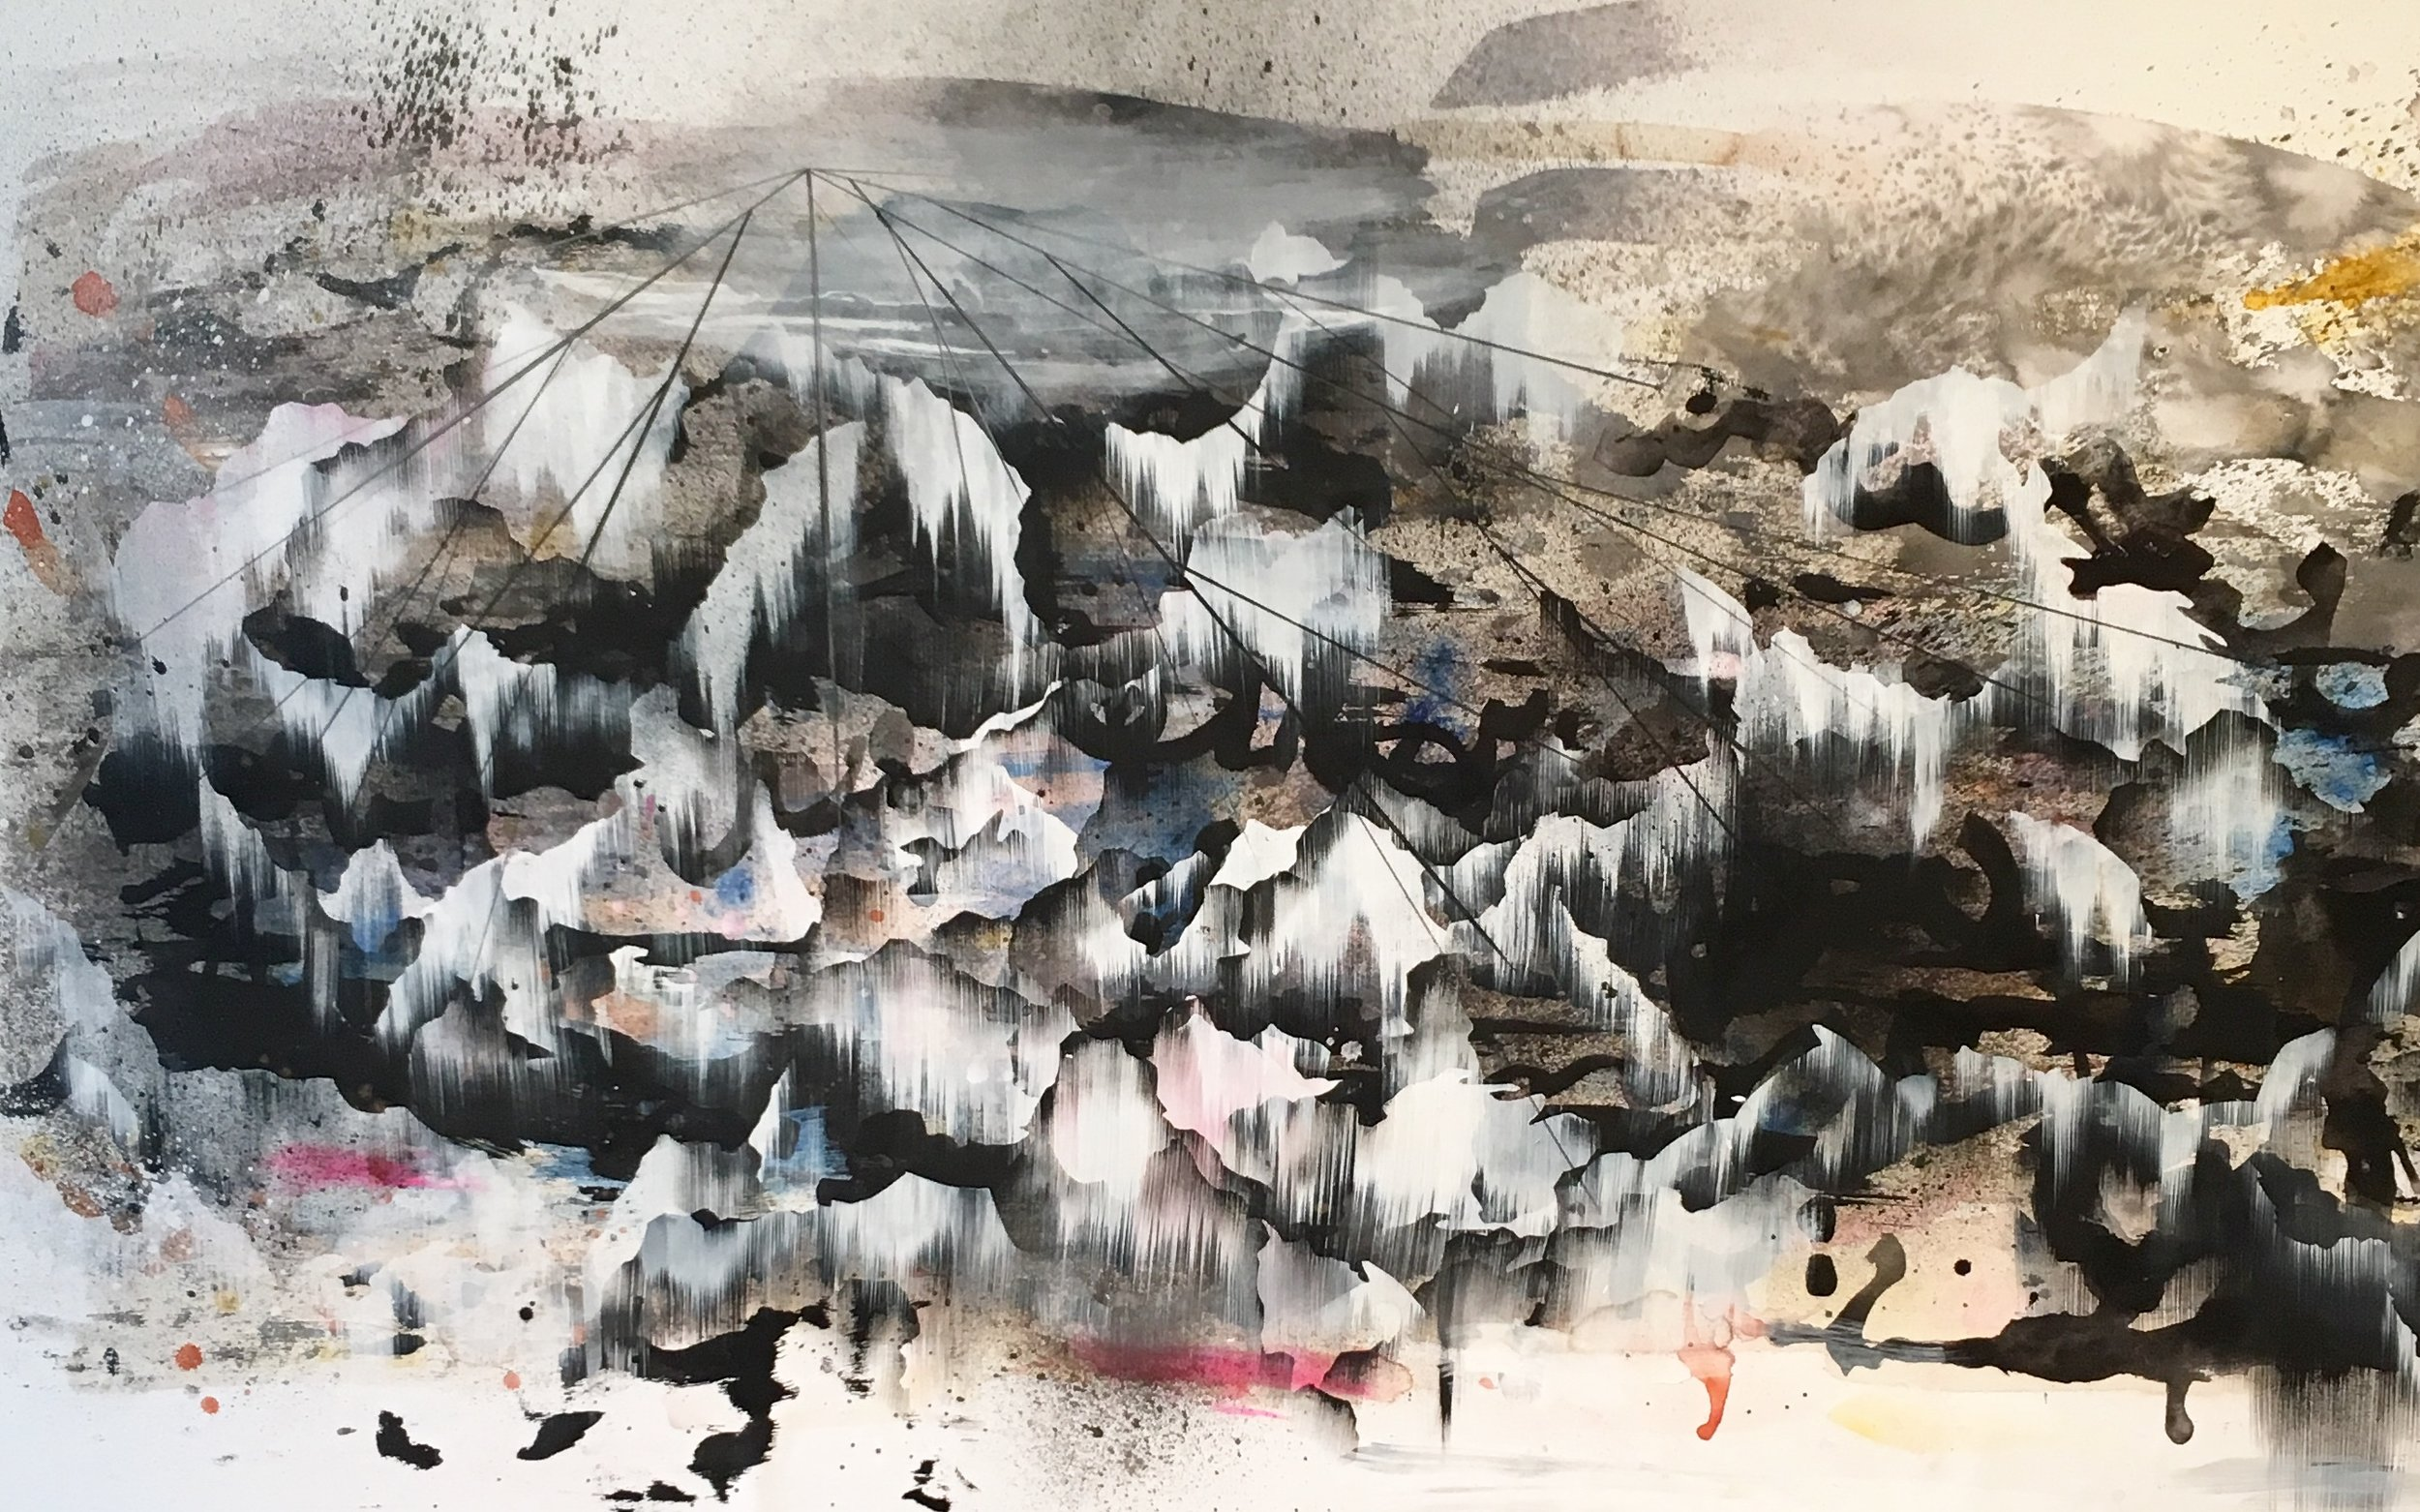 Succession by featured artist Fawn Atencio. Mixed media on paper on panel, 41in x 65in